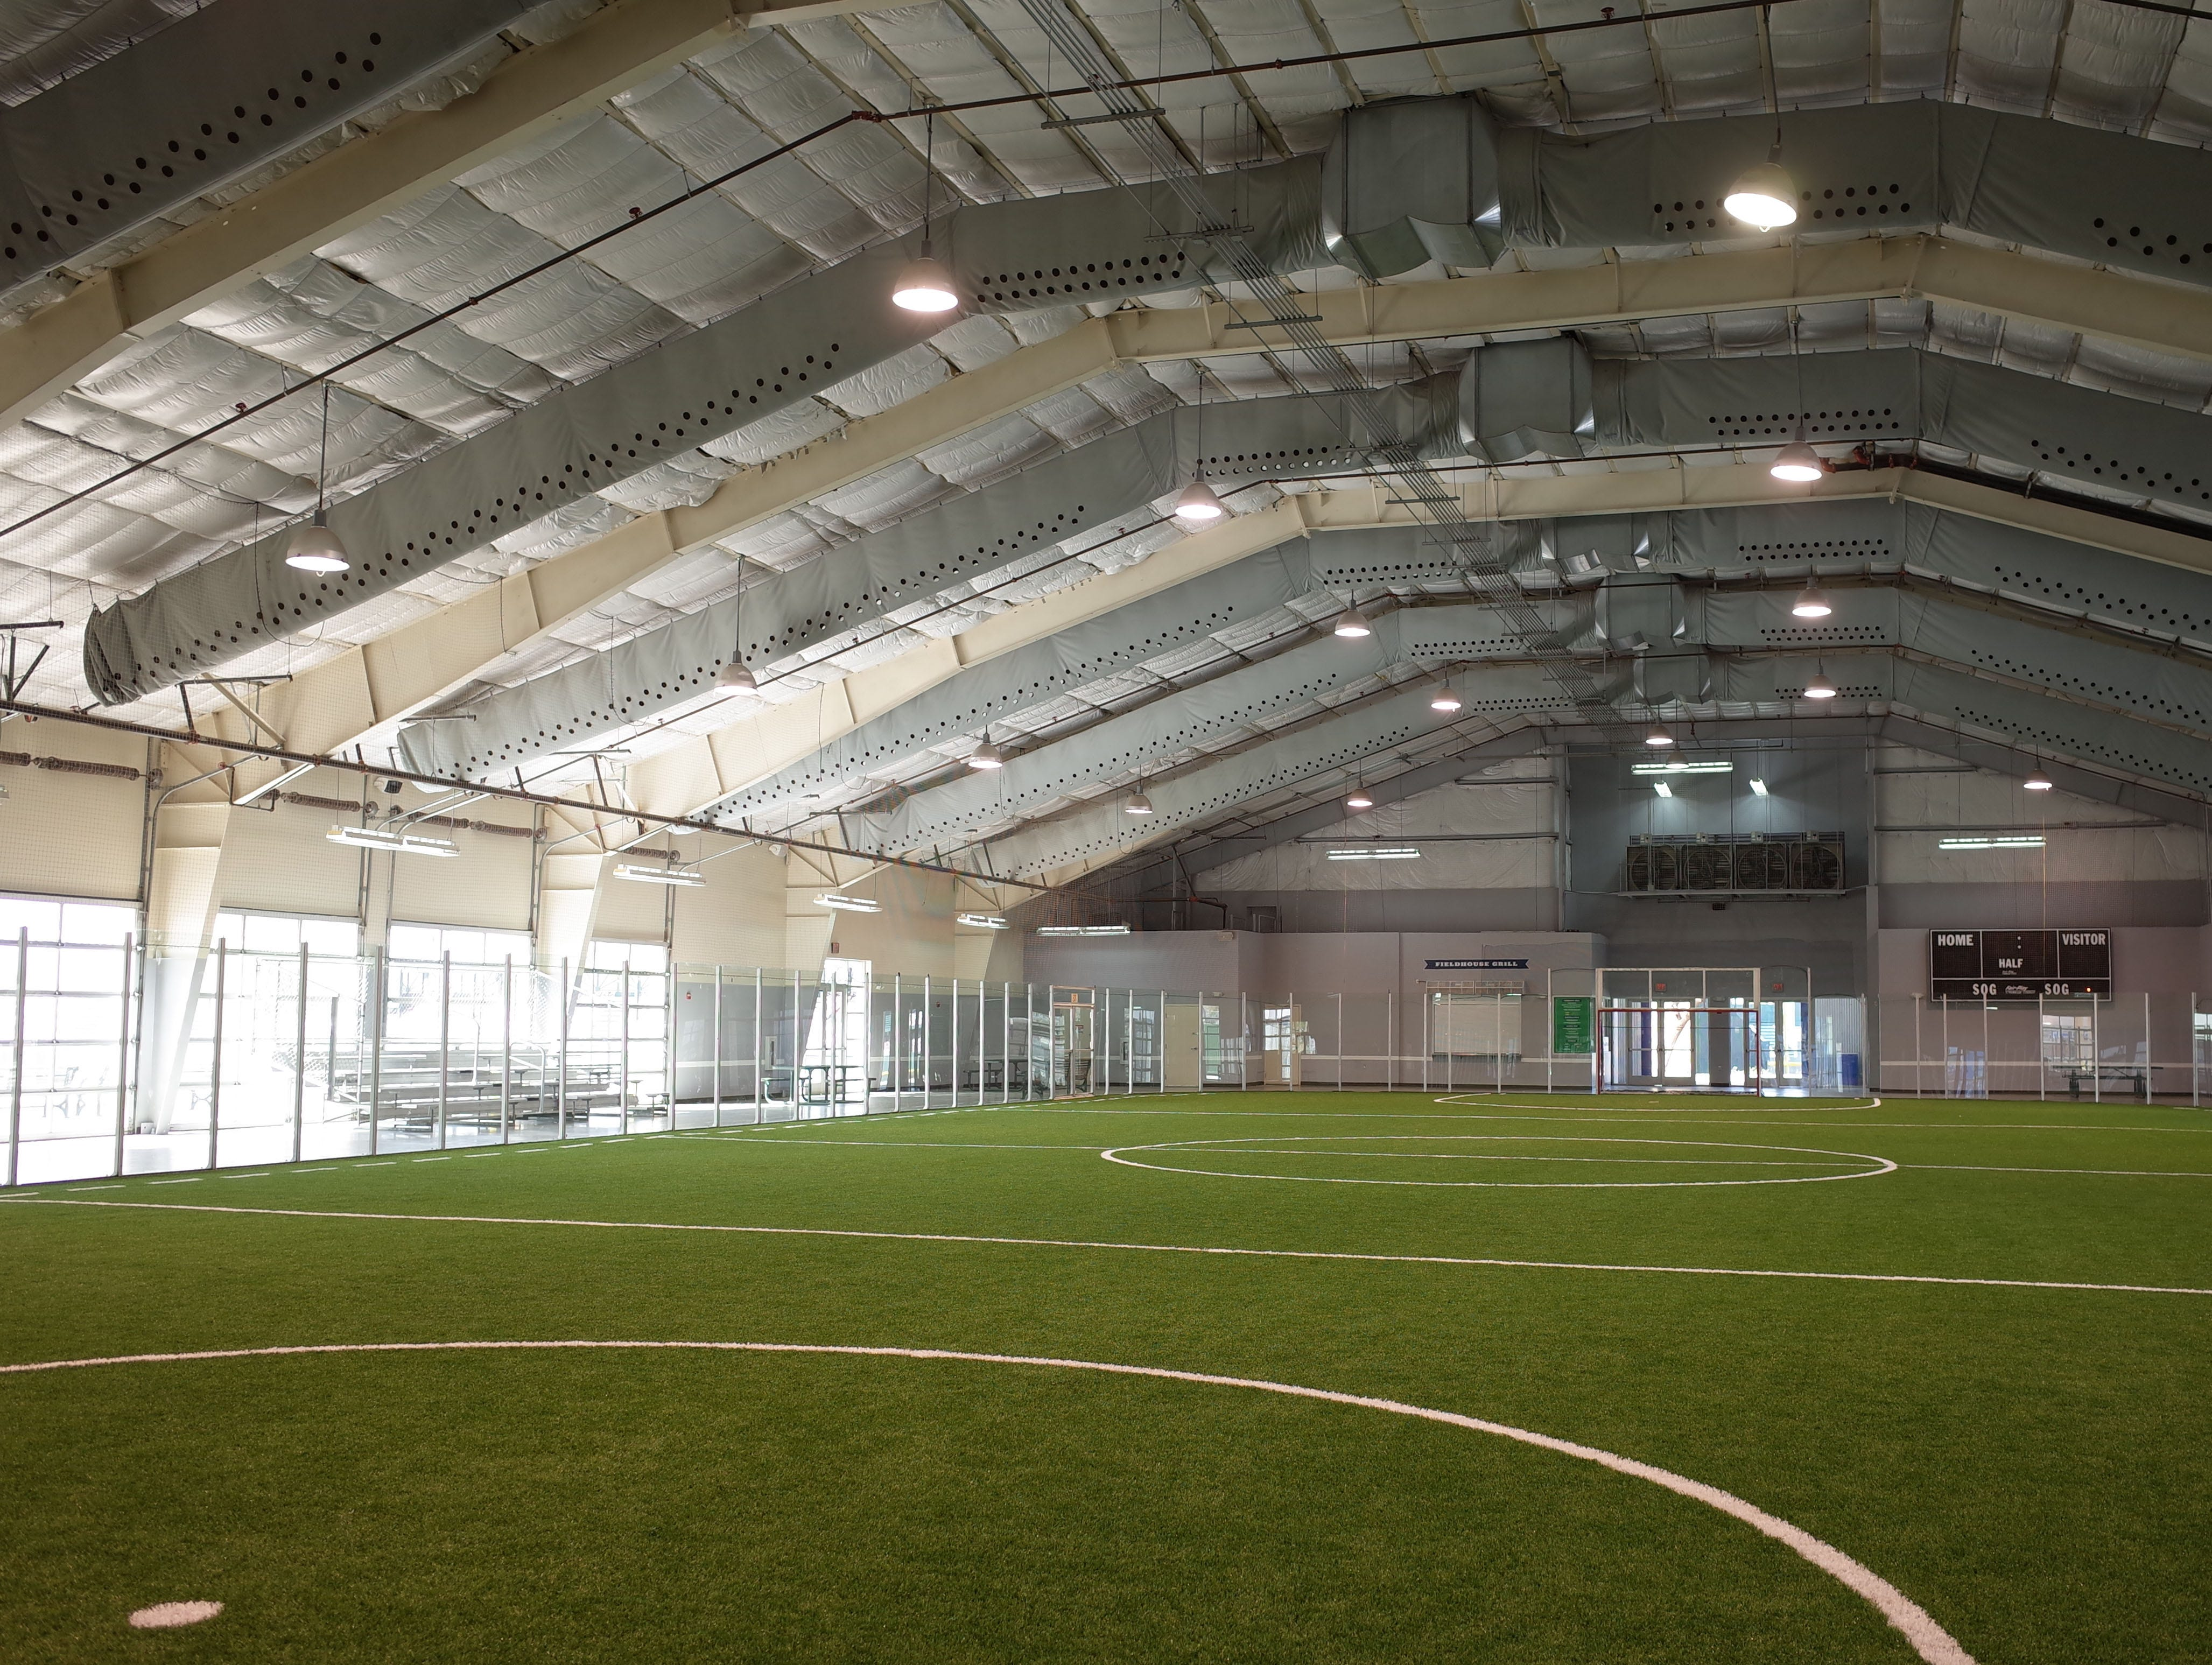 Beyond its eight ball fields, Cactus Yards has an indoor soccer arena.